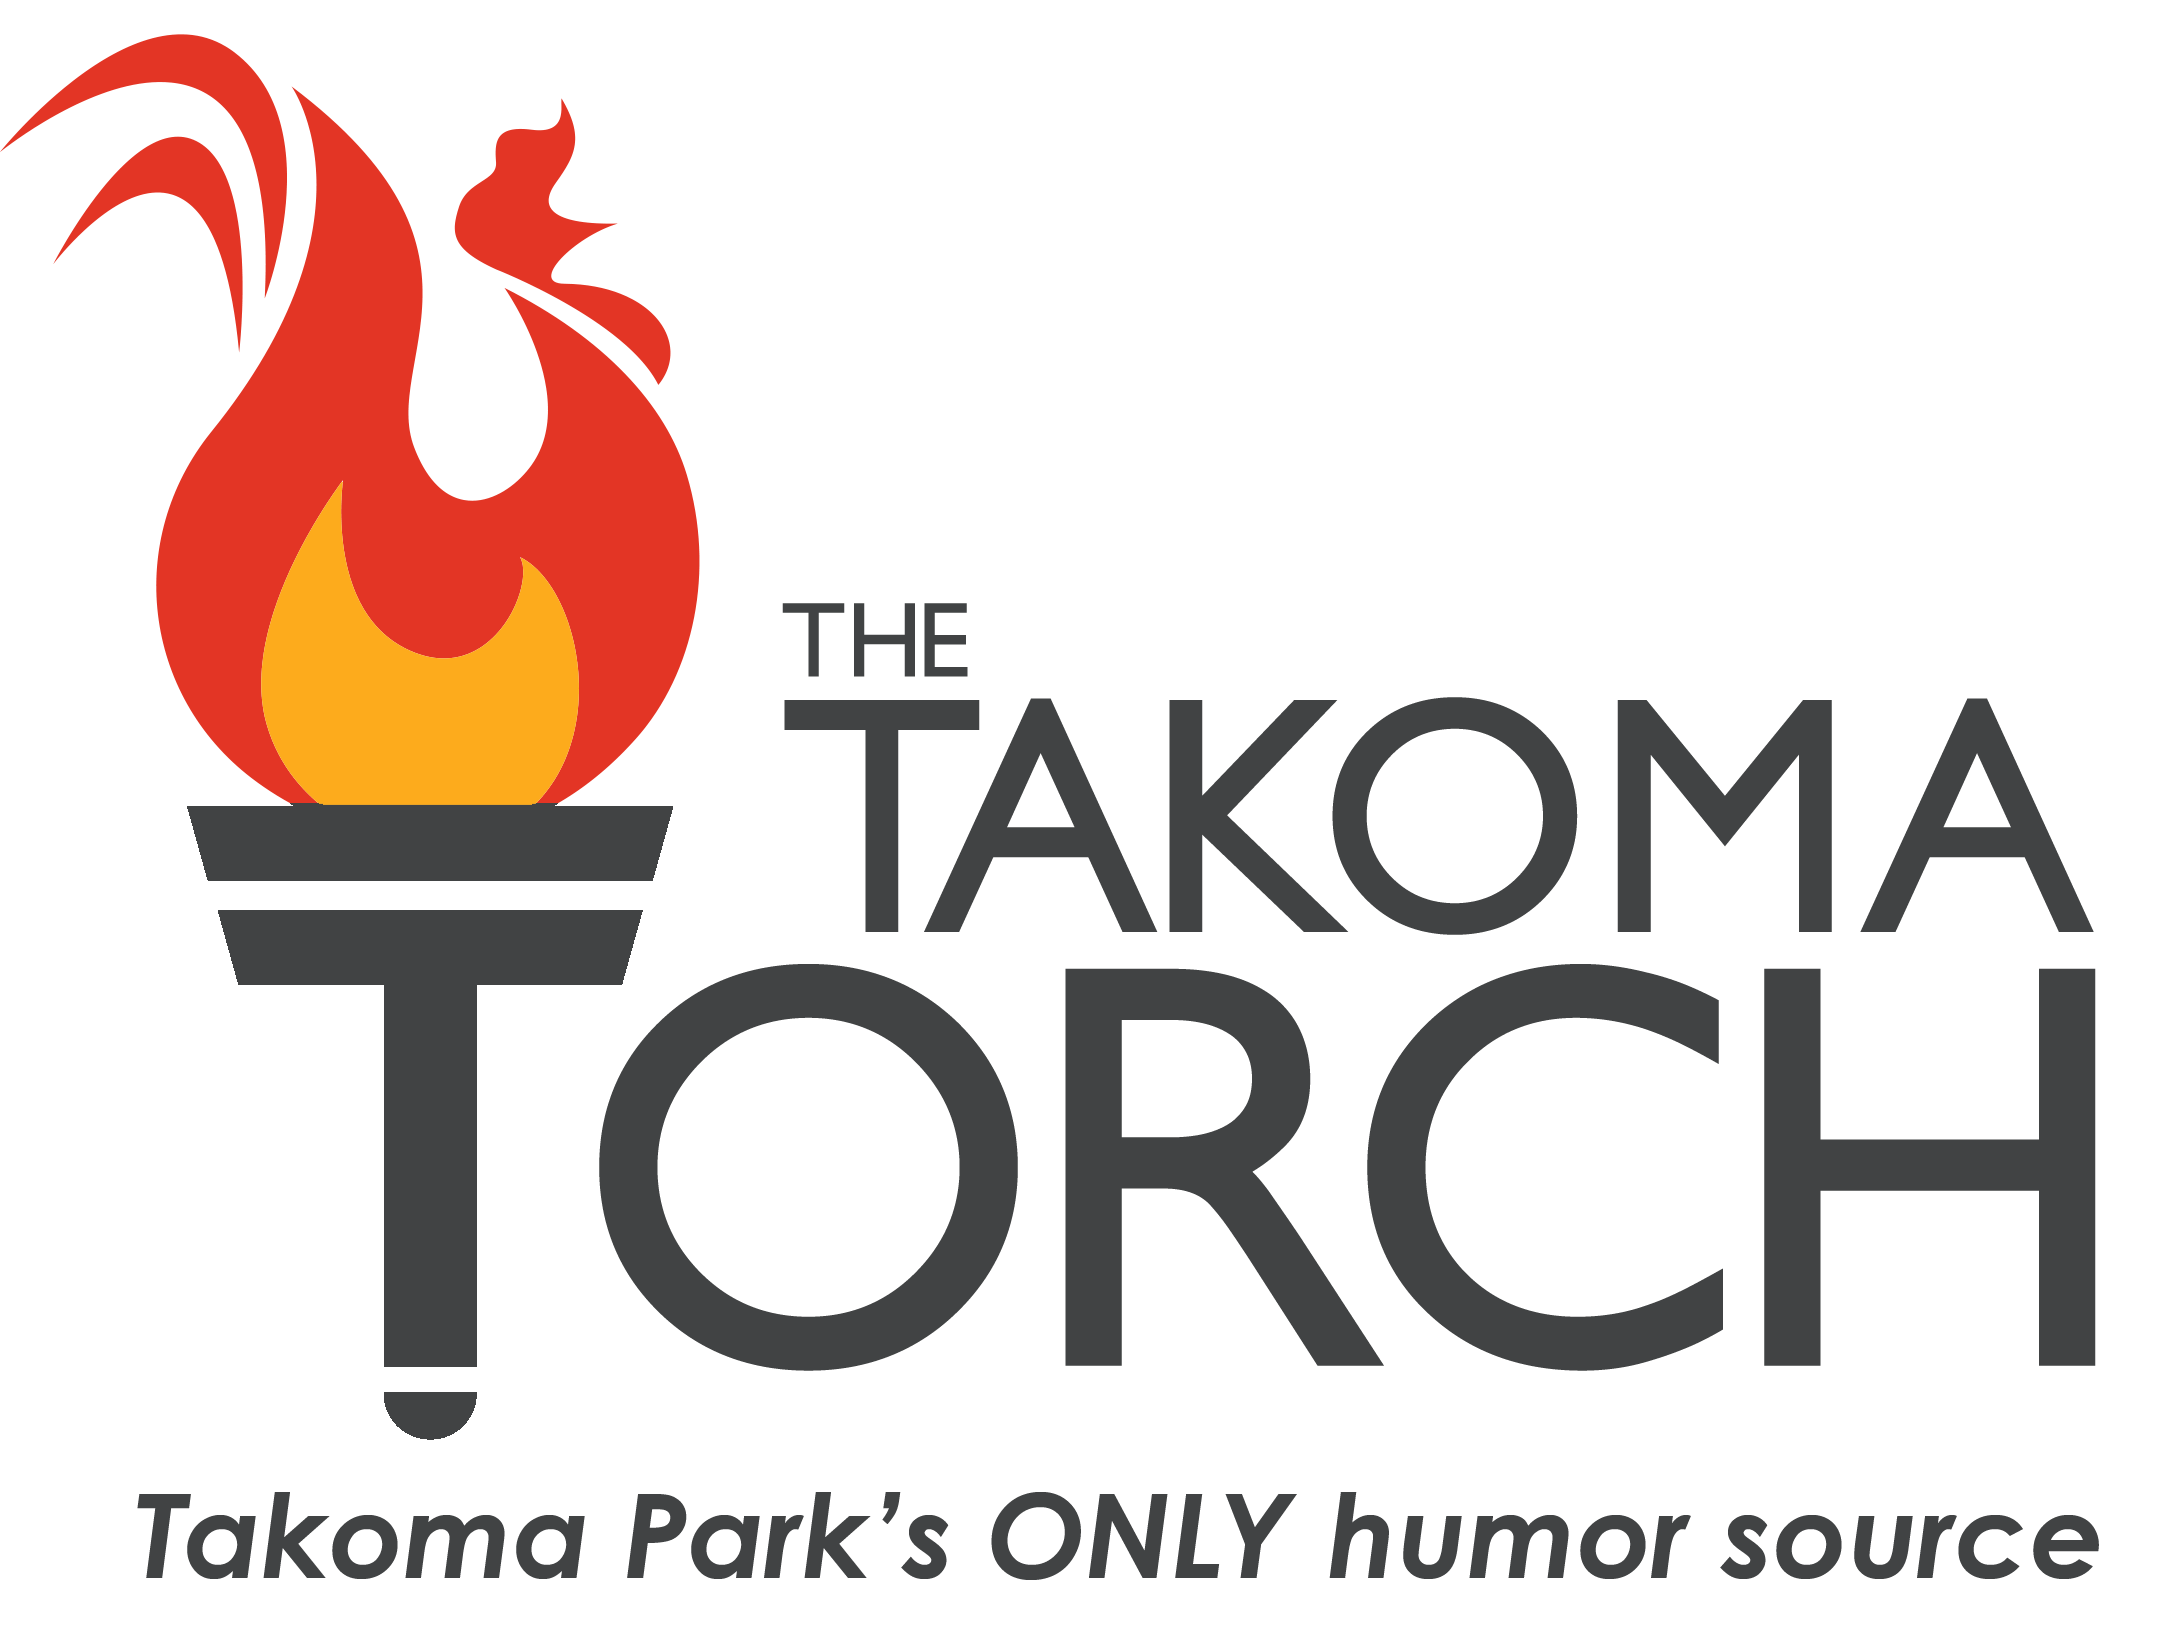 The Takoma Torch